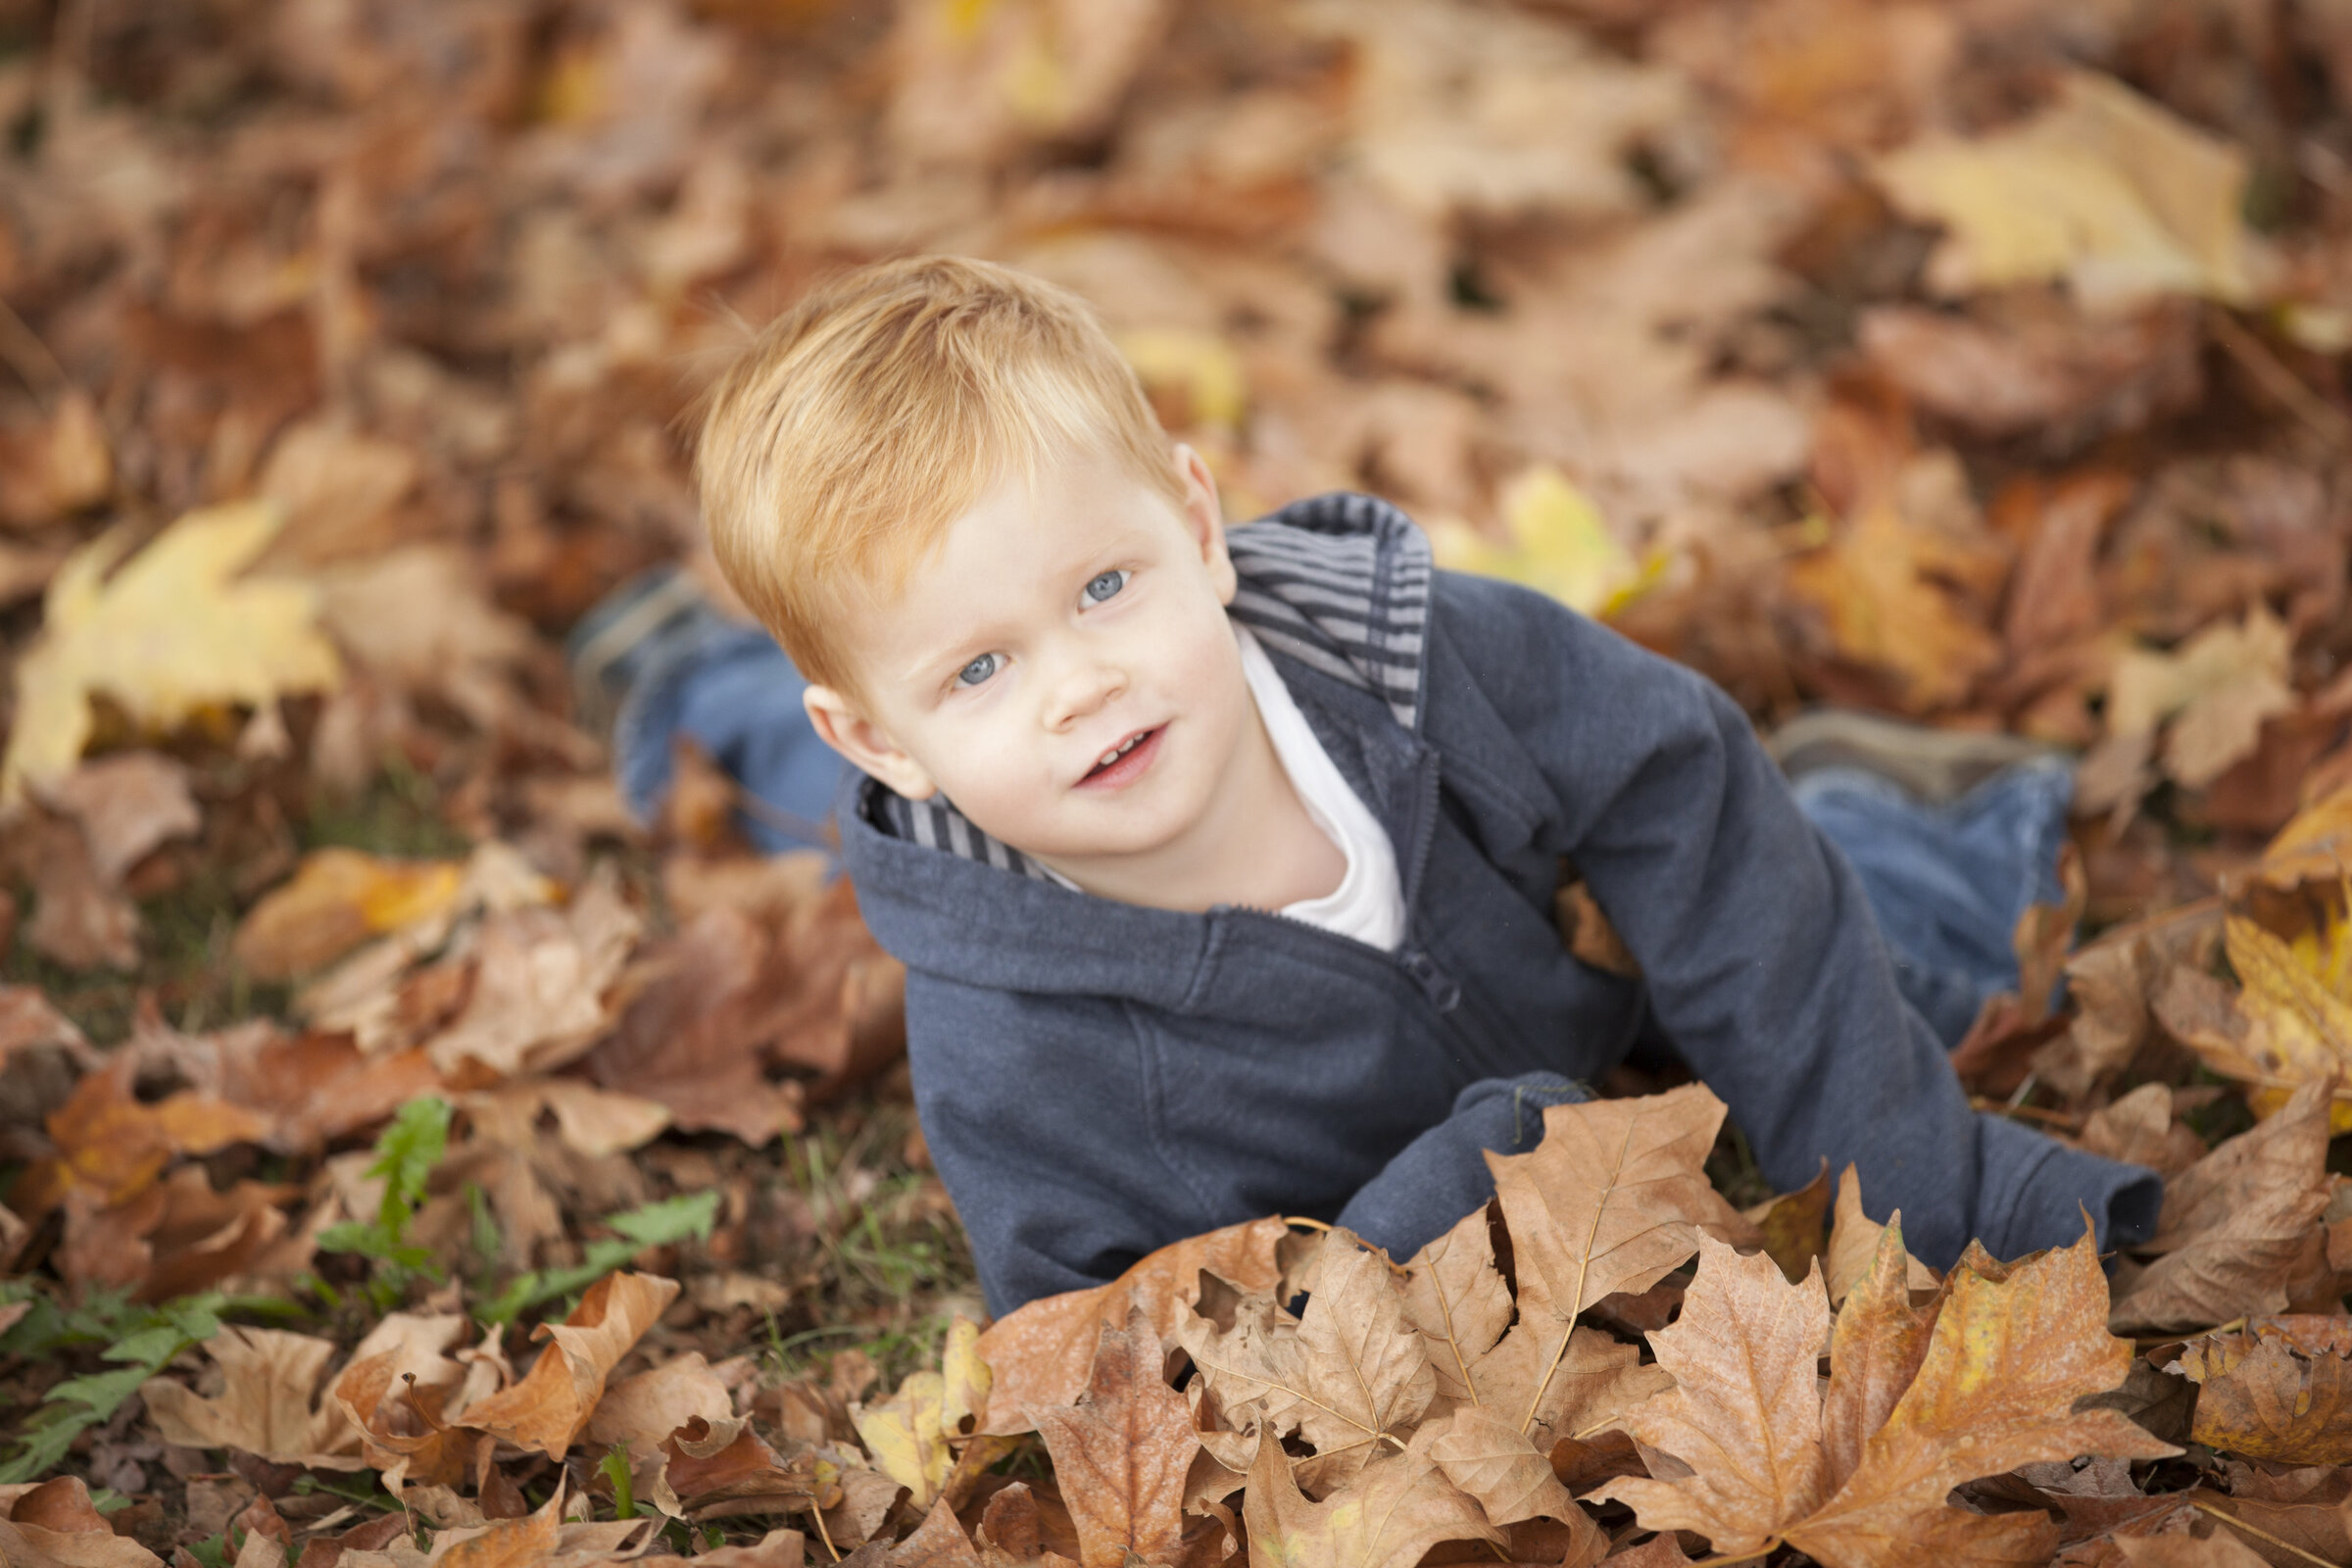 seattle photography boy in autumn leaves portrait photo